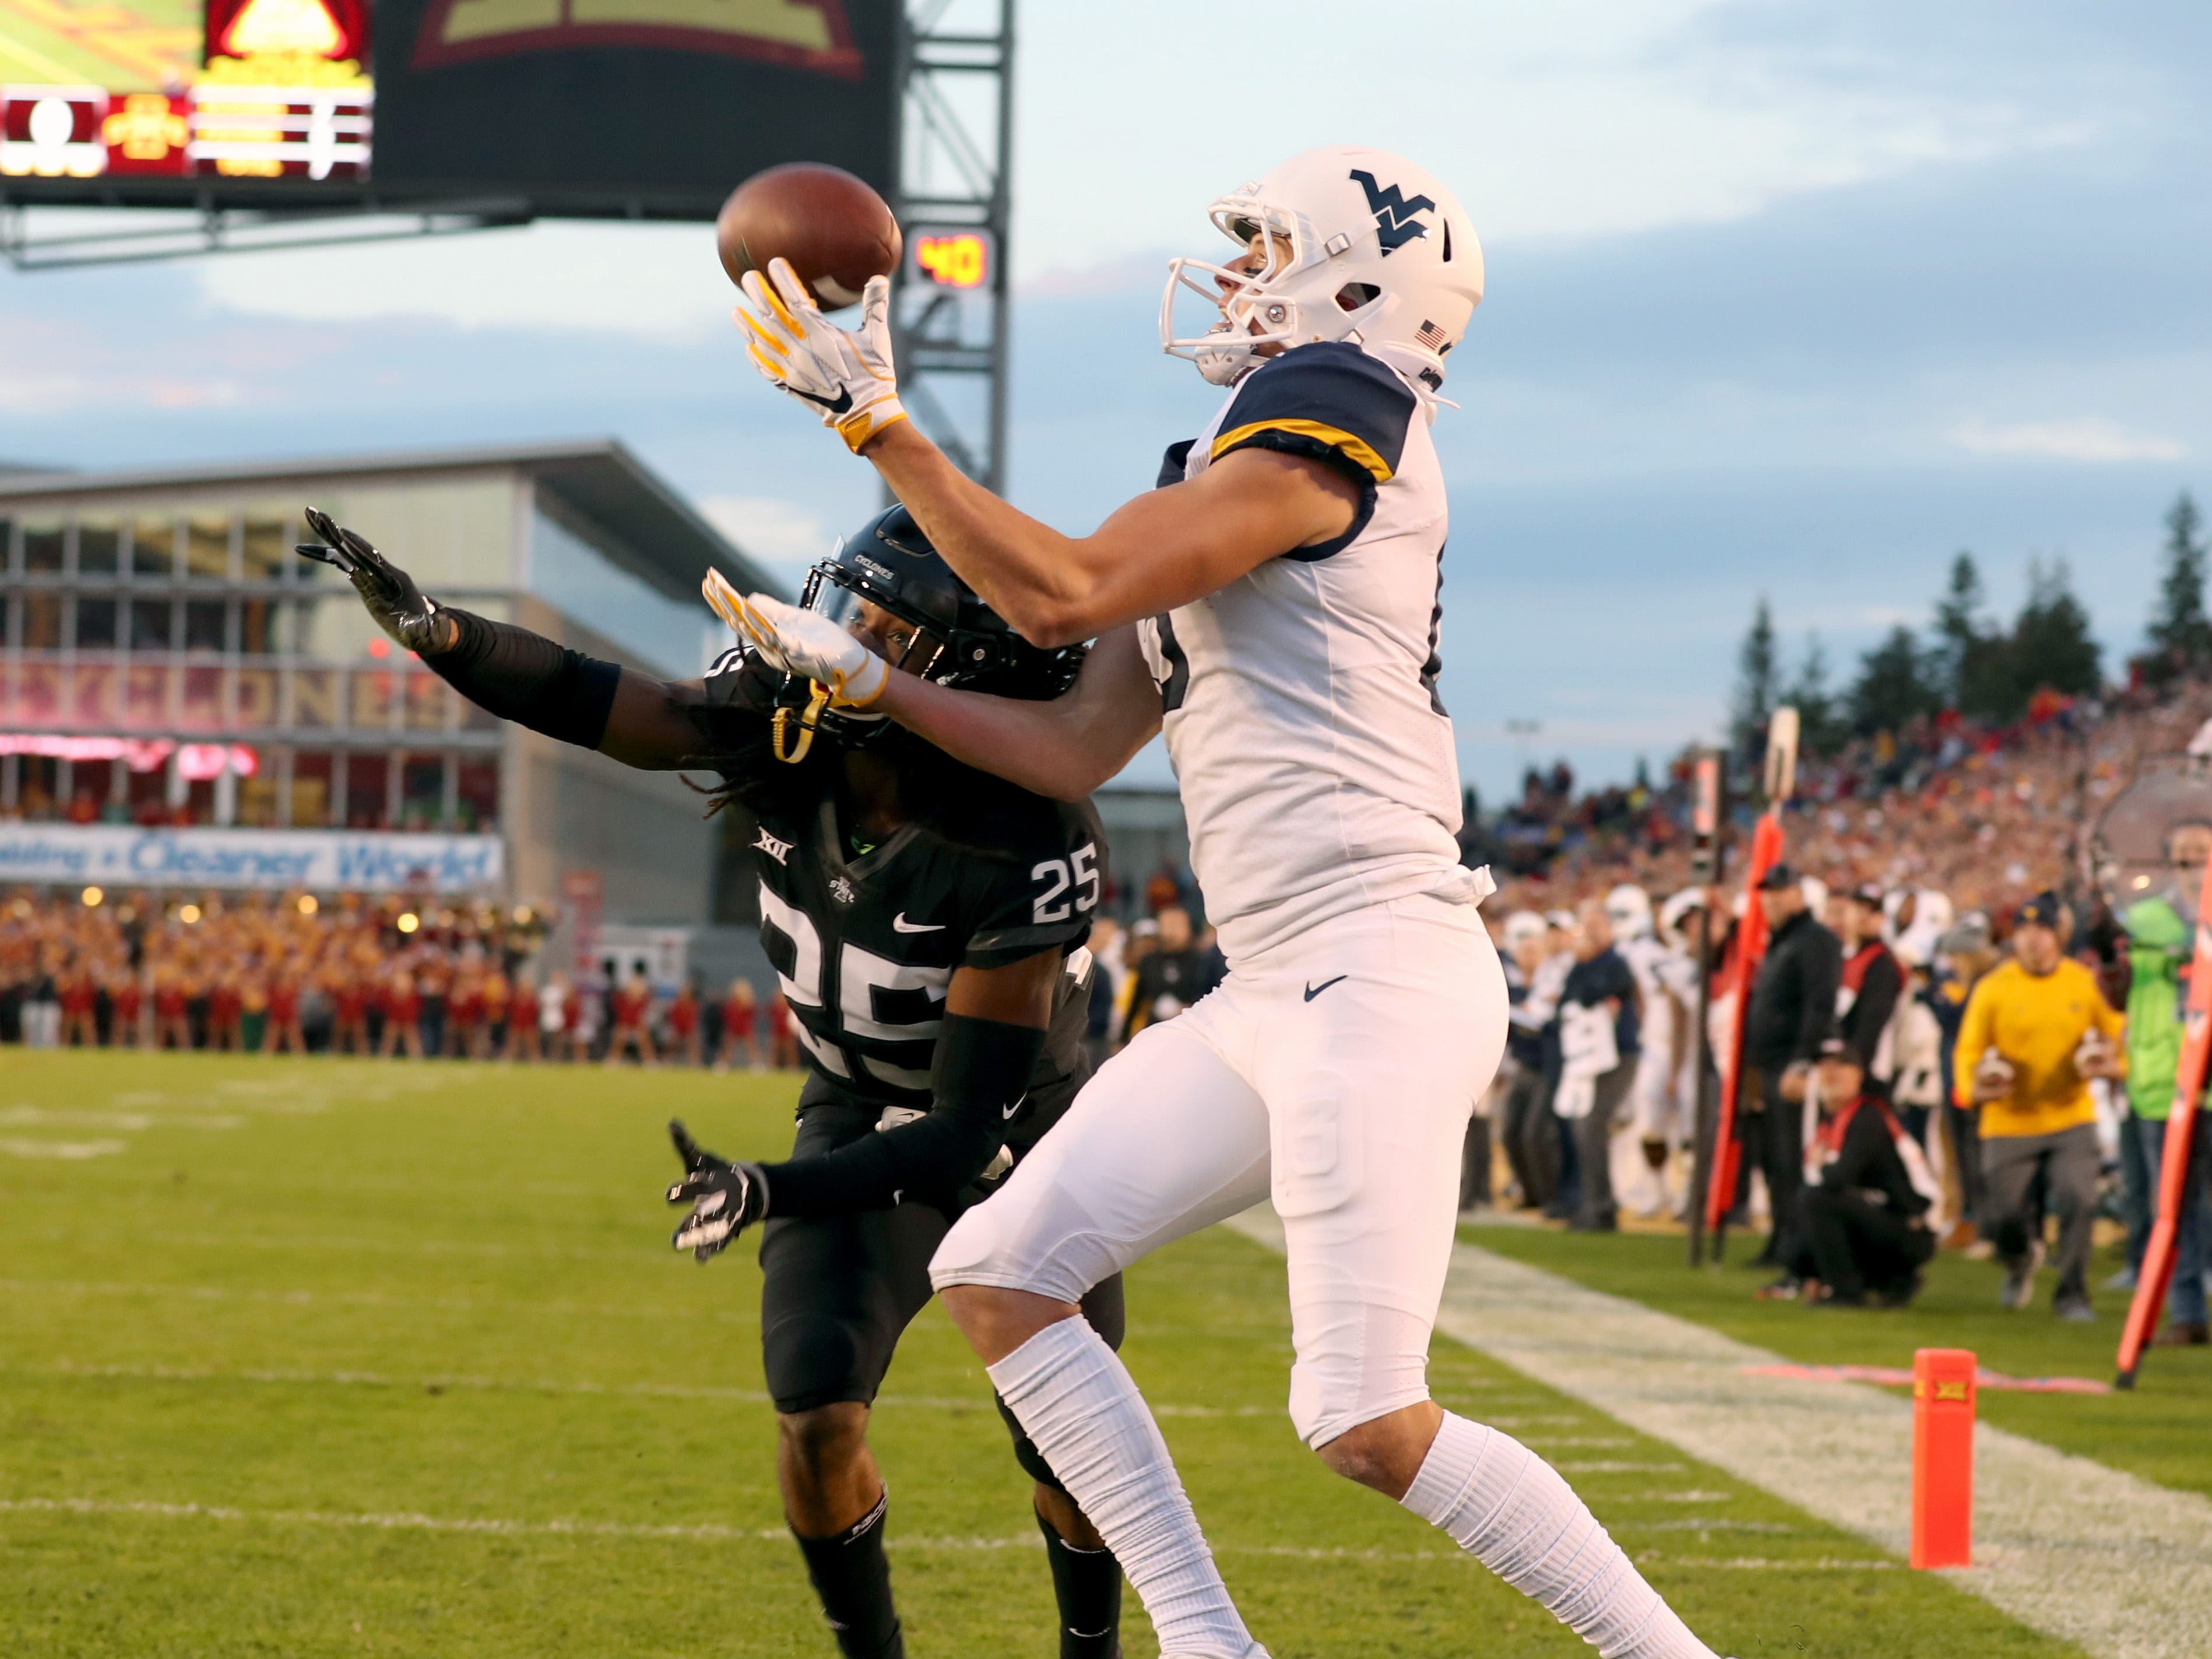 West Virginia Mountaineers wide receiver David Sills V (13) catches a touchdown pass against Iowa State Cyclones defensive back Datrone Young (25) at Jack Trice Stadium.